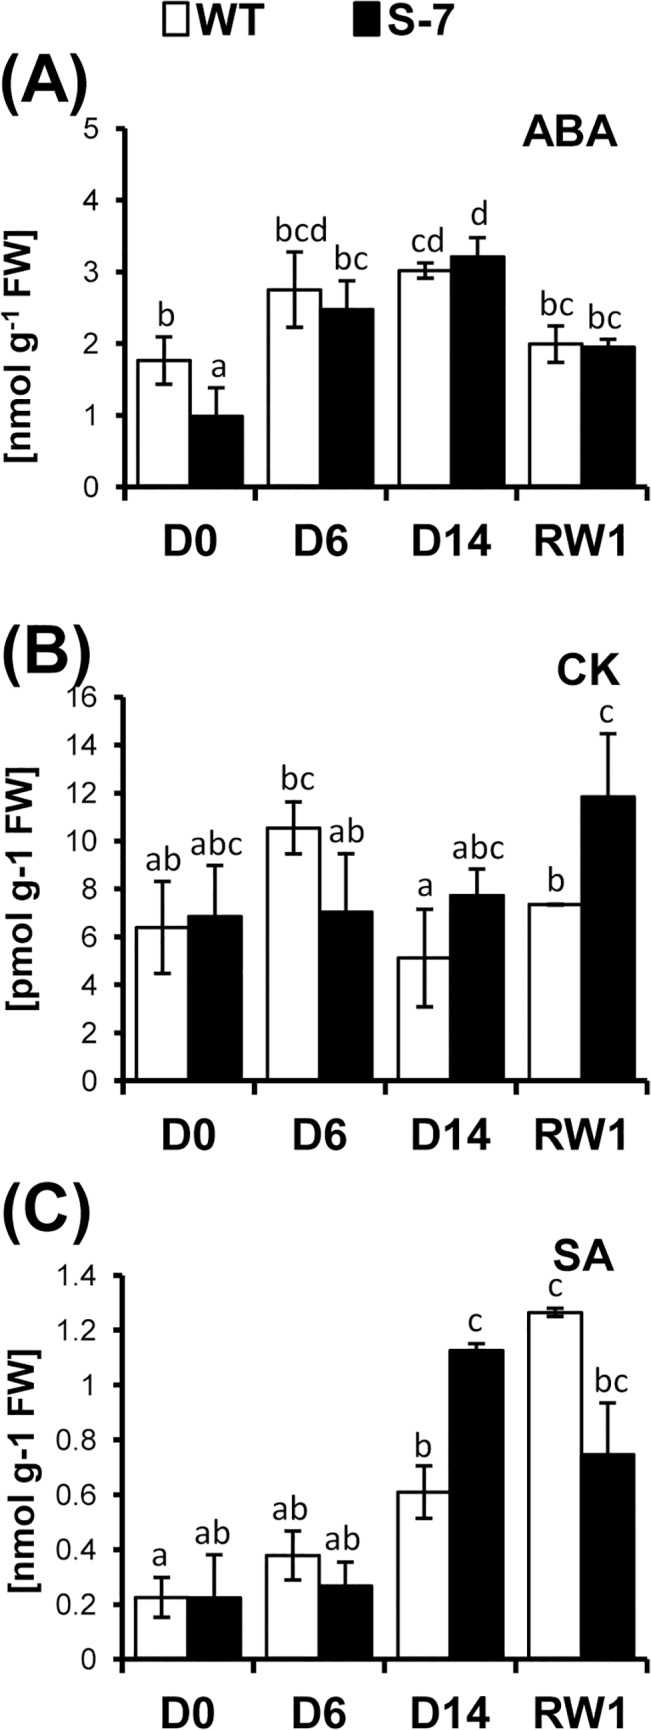 Accumulation of stress-related hormones during drought. WT (white bars) and transgenic line S-7 (black bars) were subjected to 14-day drought as described in Fig 2 . The level of (A) absicisic acid ABA; (B) sum of active cytokinins, CK; (C) salicylic acid, SA were determined at D0, D6, D14 and RW1. Samples (0.5g of fresh leaf tissue without the midrib) were collected from the first fully developed, undamaged leaf from the top of plant at 4 hours after turning the light. Labeled internal standards were added to the leaf samples before homogenization. Hormones were then extracted, purified using a <t>SPE-C18</t> column and separated on a reverse phase-cation exchange SPE column. Hormones were quantified using a hybrid triple quadruple/linear ion trap mass spectrometer. The level of ABA and SA is expressed as nmol g -1 of fresh weight; the levels of cytokinins–as pmol g -1 of fresh weight. Results are means ±SE (n = 3). Homogenic groups are determined by Tukey HSD (Honestly Significant Differences) test. The same letters designate values belong to the same homogenic group (p